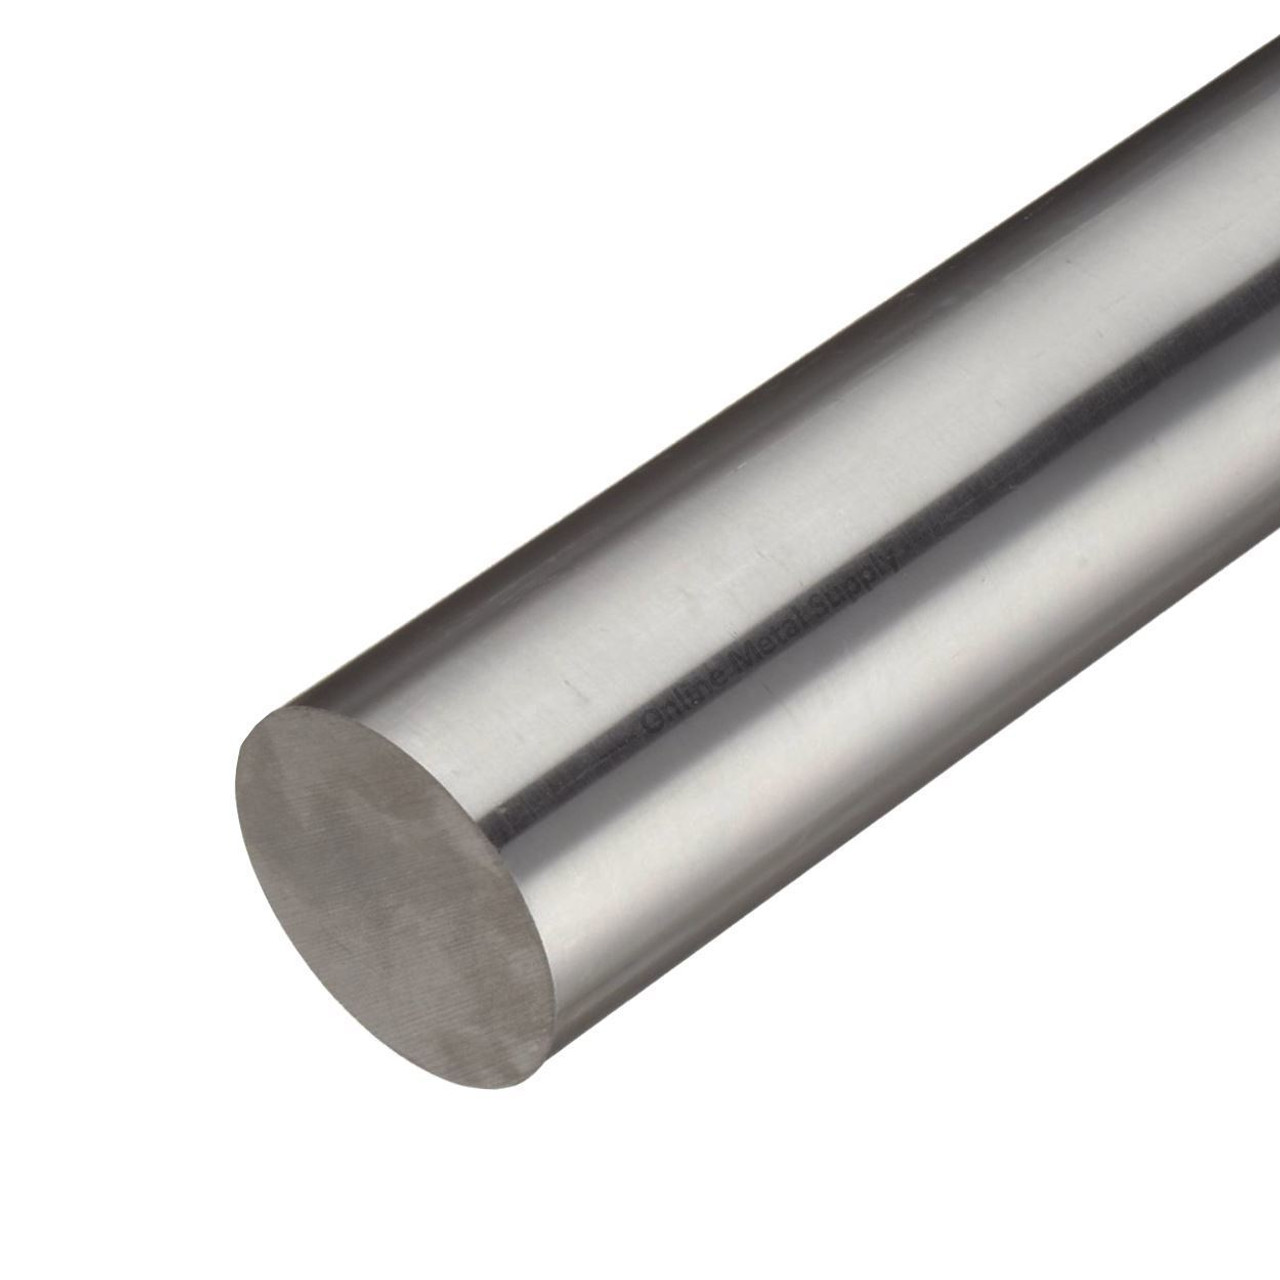 3.000 (3 inch) x 9 inches, 15-5 Cond A CF Stainless Steel Round Rod